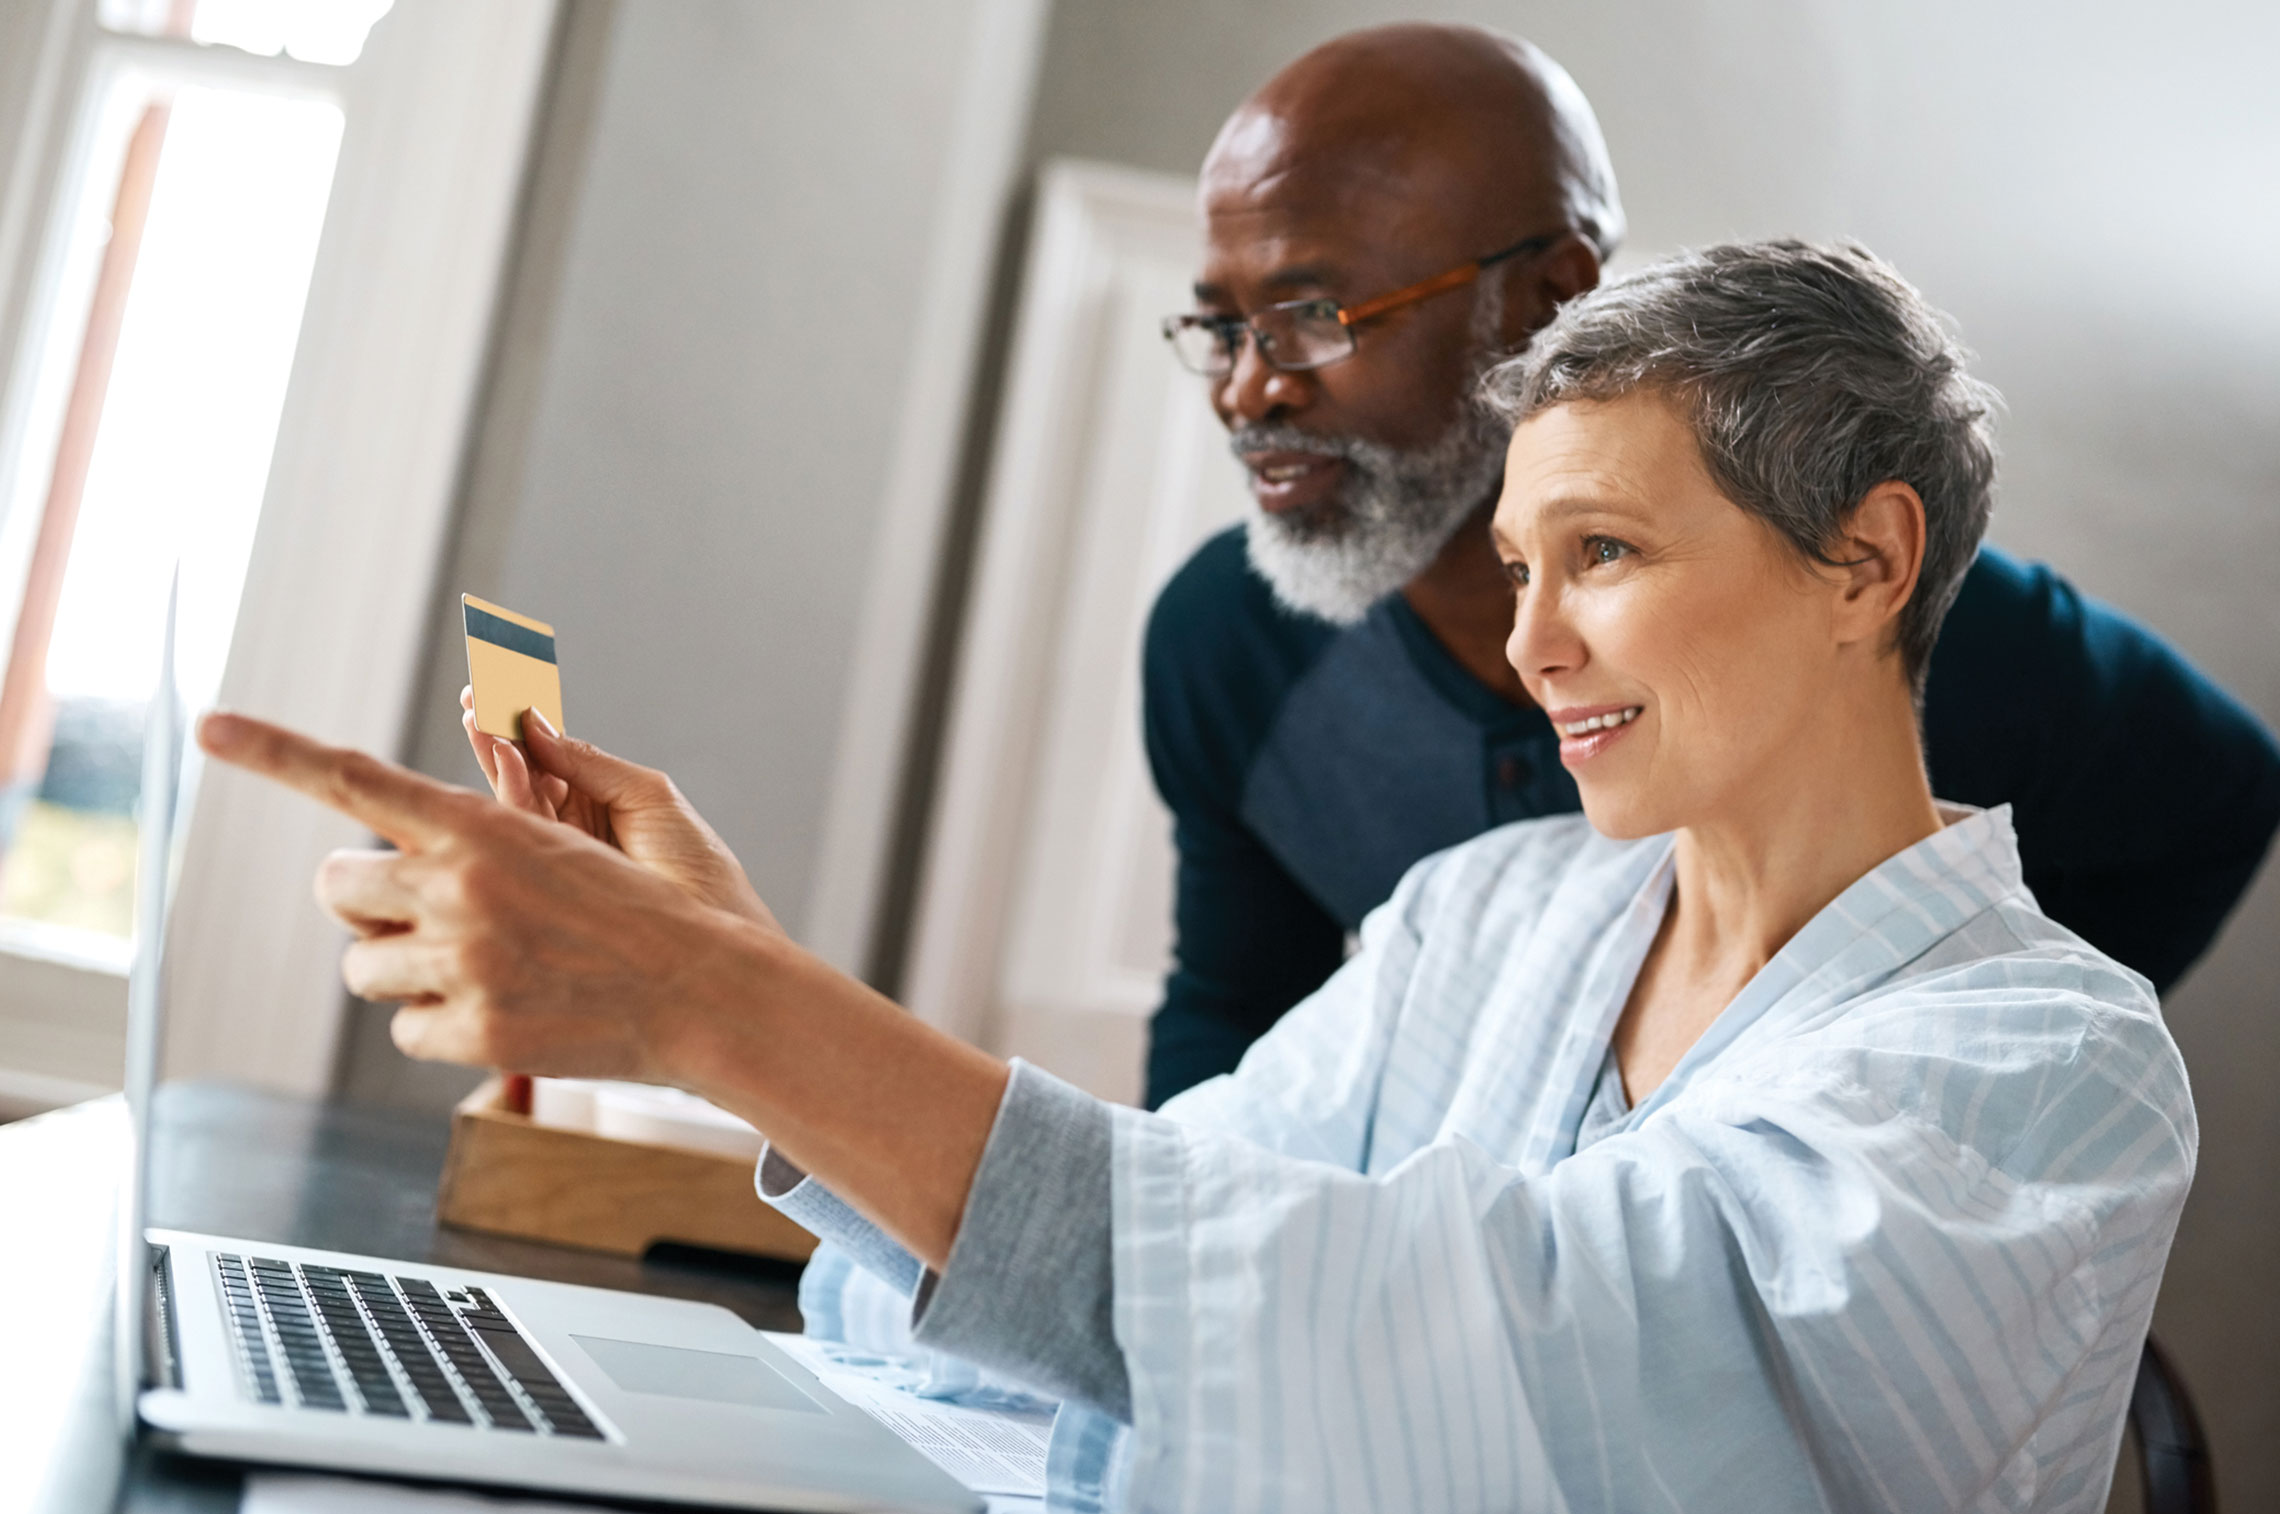 A Few Helpful Tips to Protect Yourself From Identity Theft